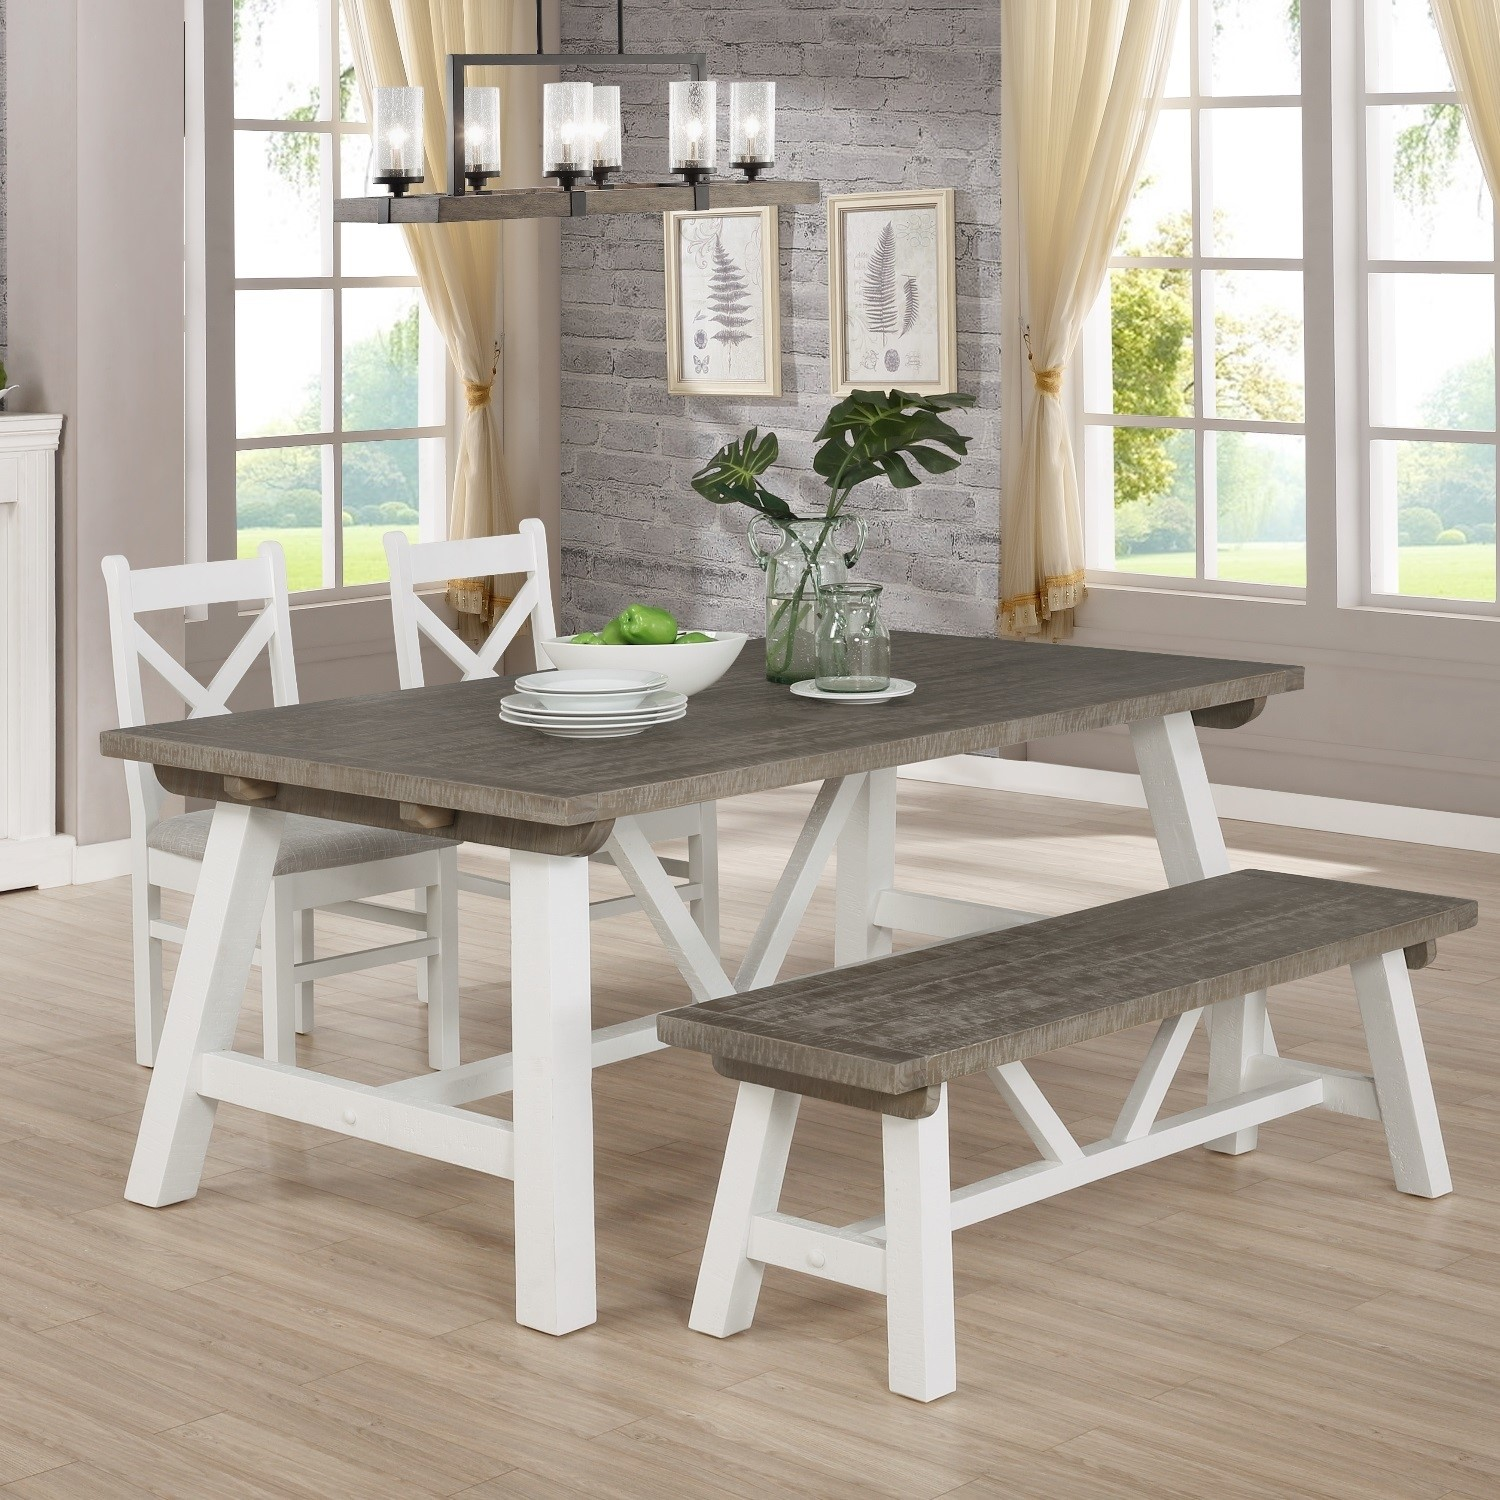 White Dining Room Table Bench Off 62, White Dining Room Table Bench